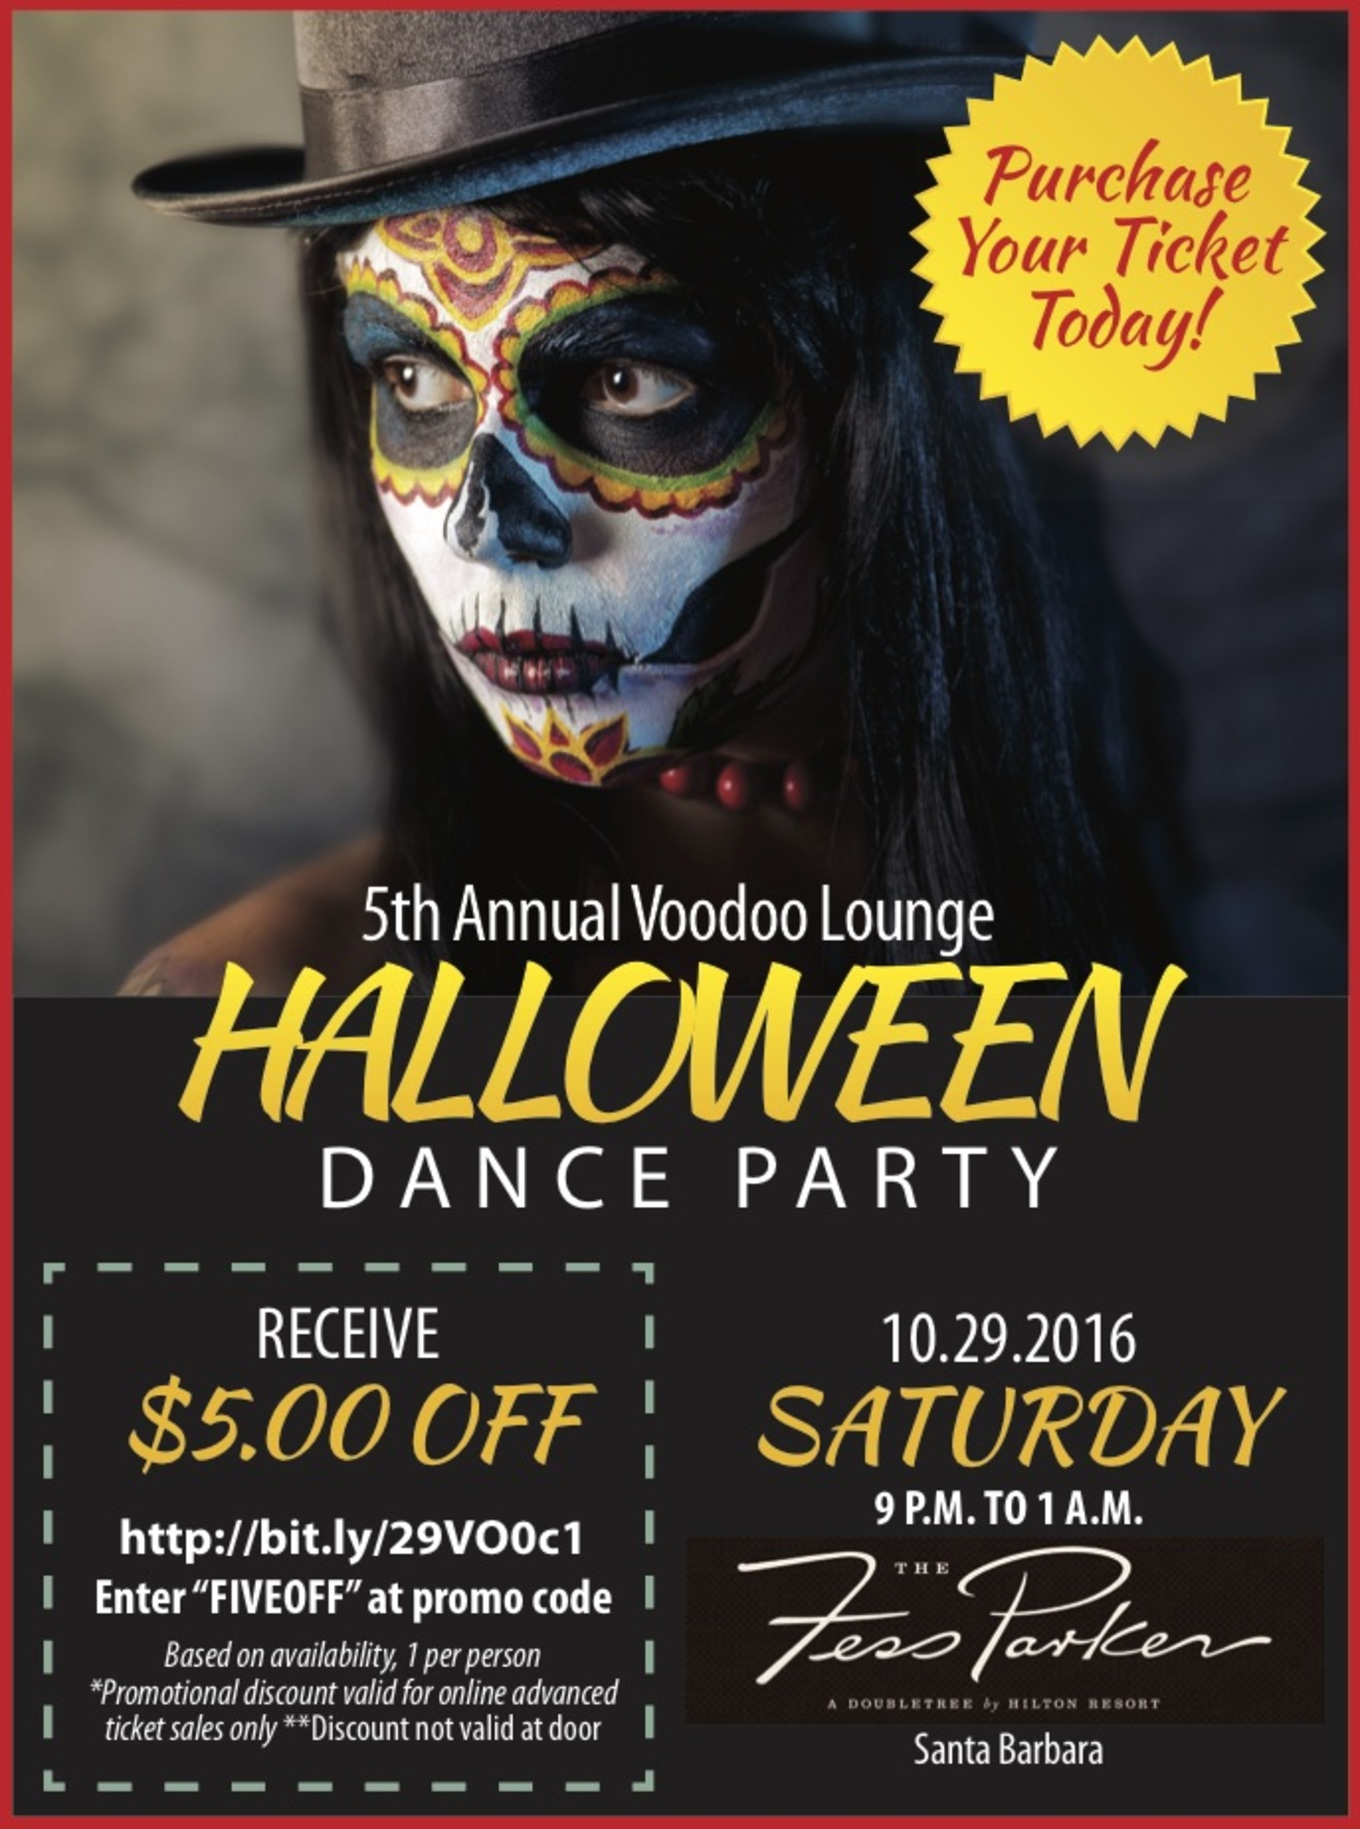 Voodoo Lounge 5th Annual Halloween Dance Party - Fess Parker ...